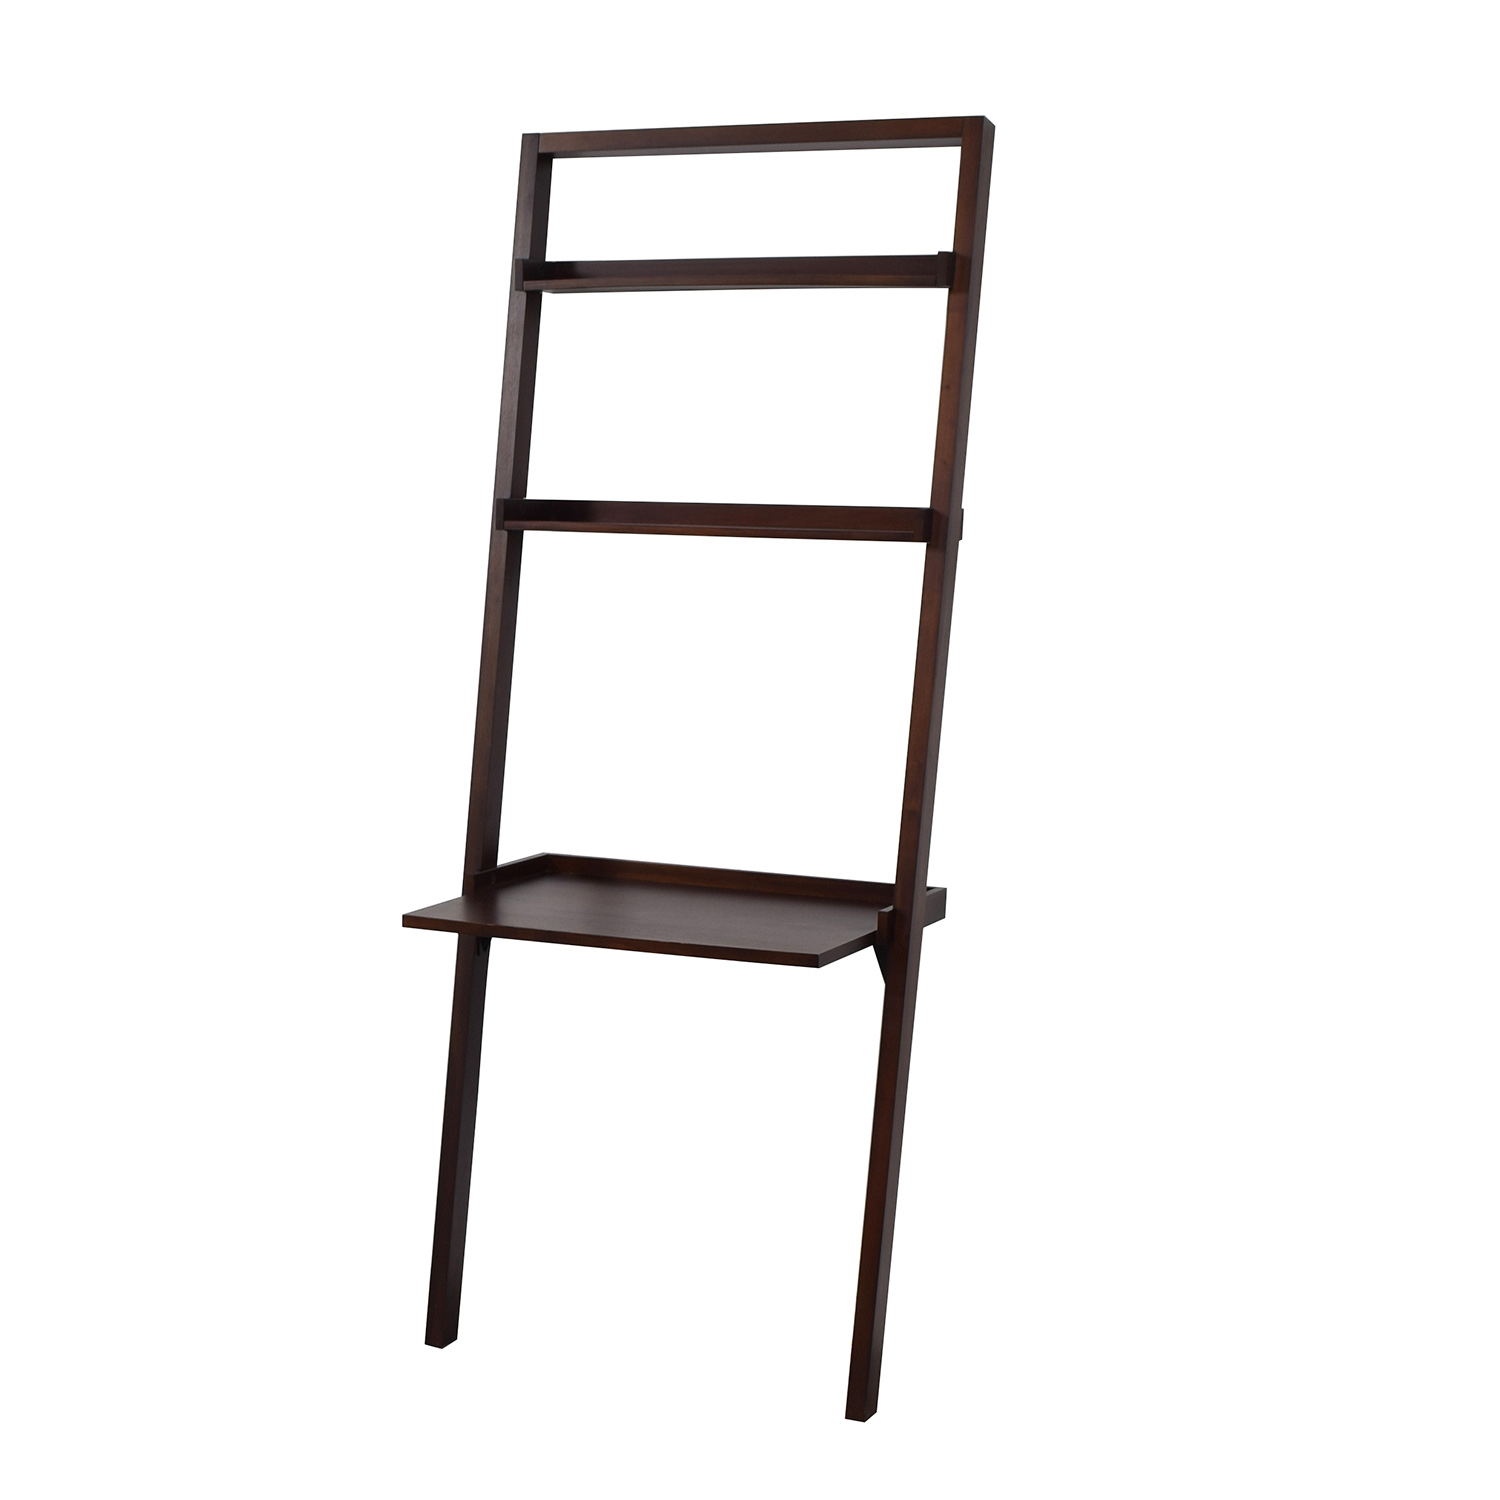 shop Pottery Barn Leaning Wood Shelves and Desk Pottery Barn Bookcases & Shelving